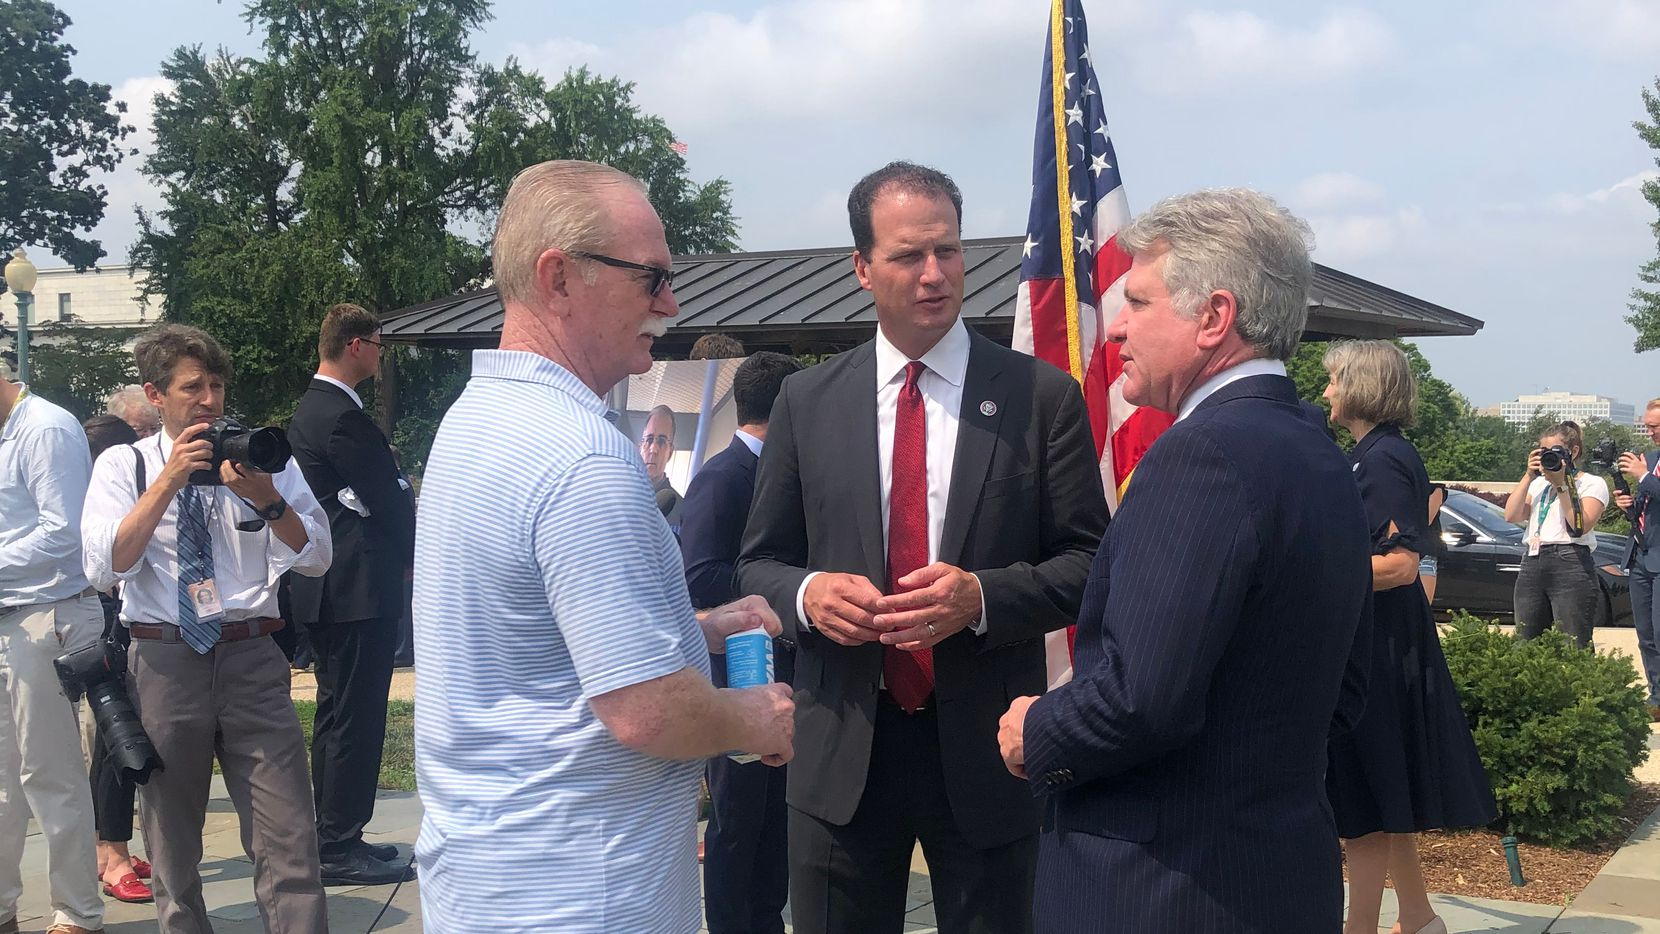 Joey Reed, father of imprisoned former U.S. Marine Trevor Reed, meets with U.S. Reps. Michael McCaul, of Austin, and August Pfluger, of San Angelo. Both Republican lawmakers have been pushing for Reed's release.